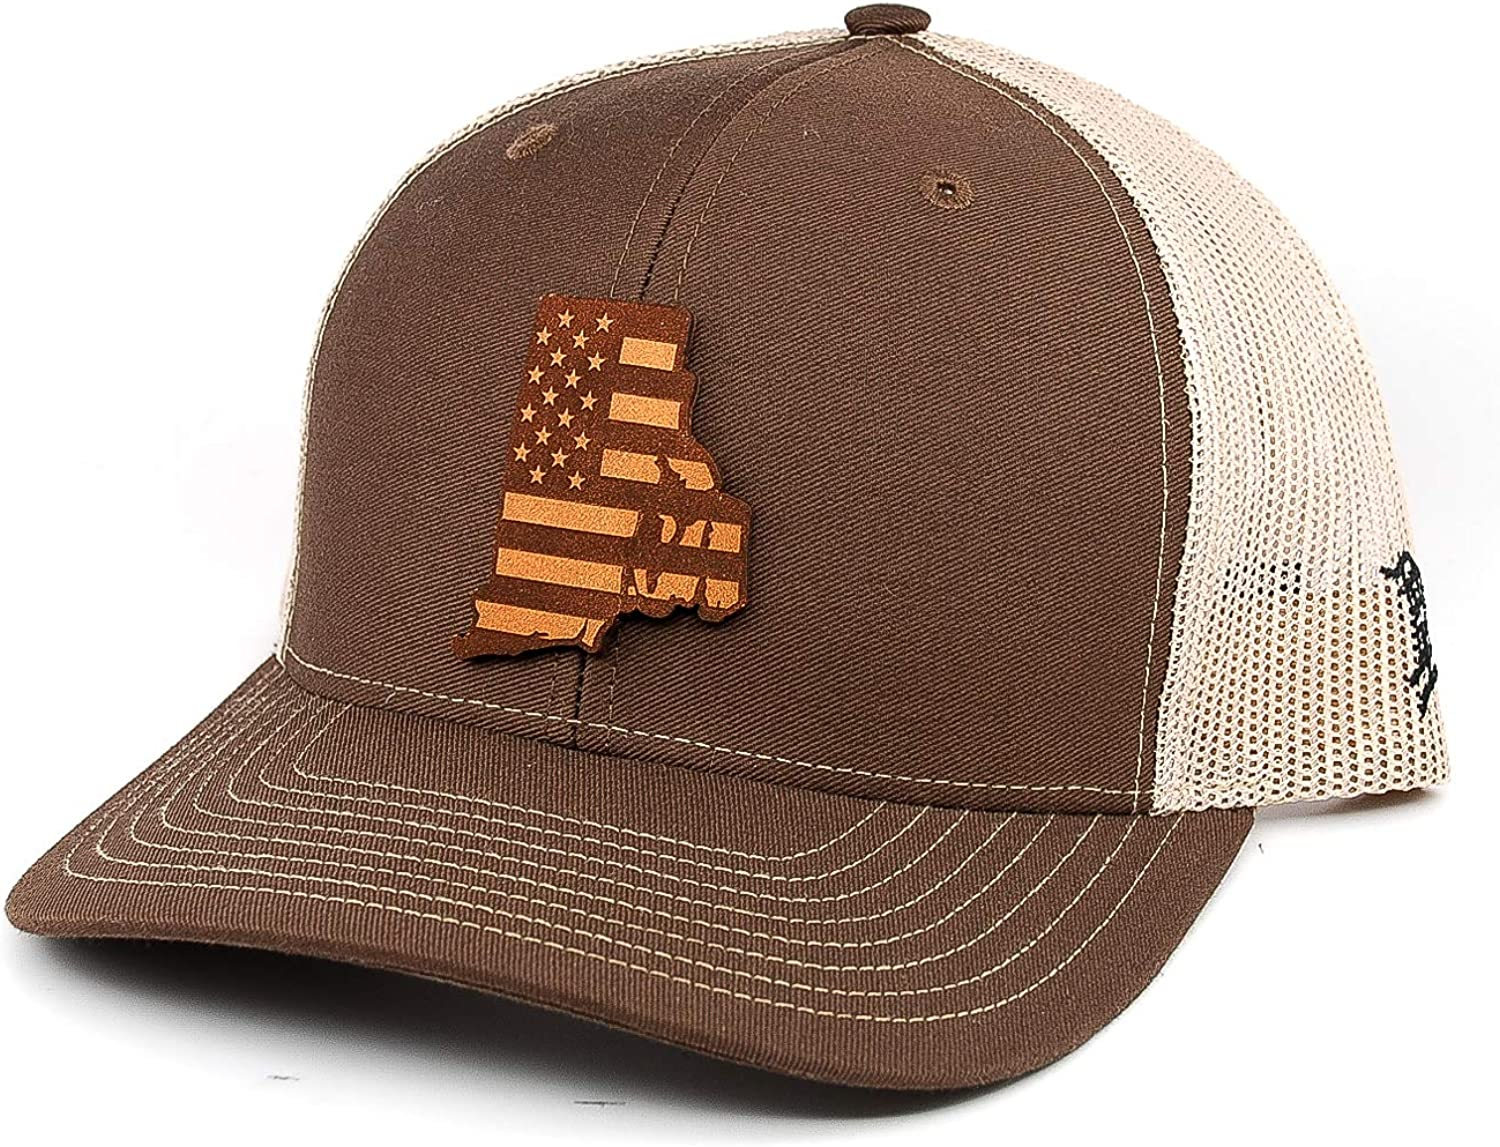 Branded Bills /'Rhode Island Patriot/' Leather Patch Hat Curved Trucker OSFA//Brown//Tan